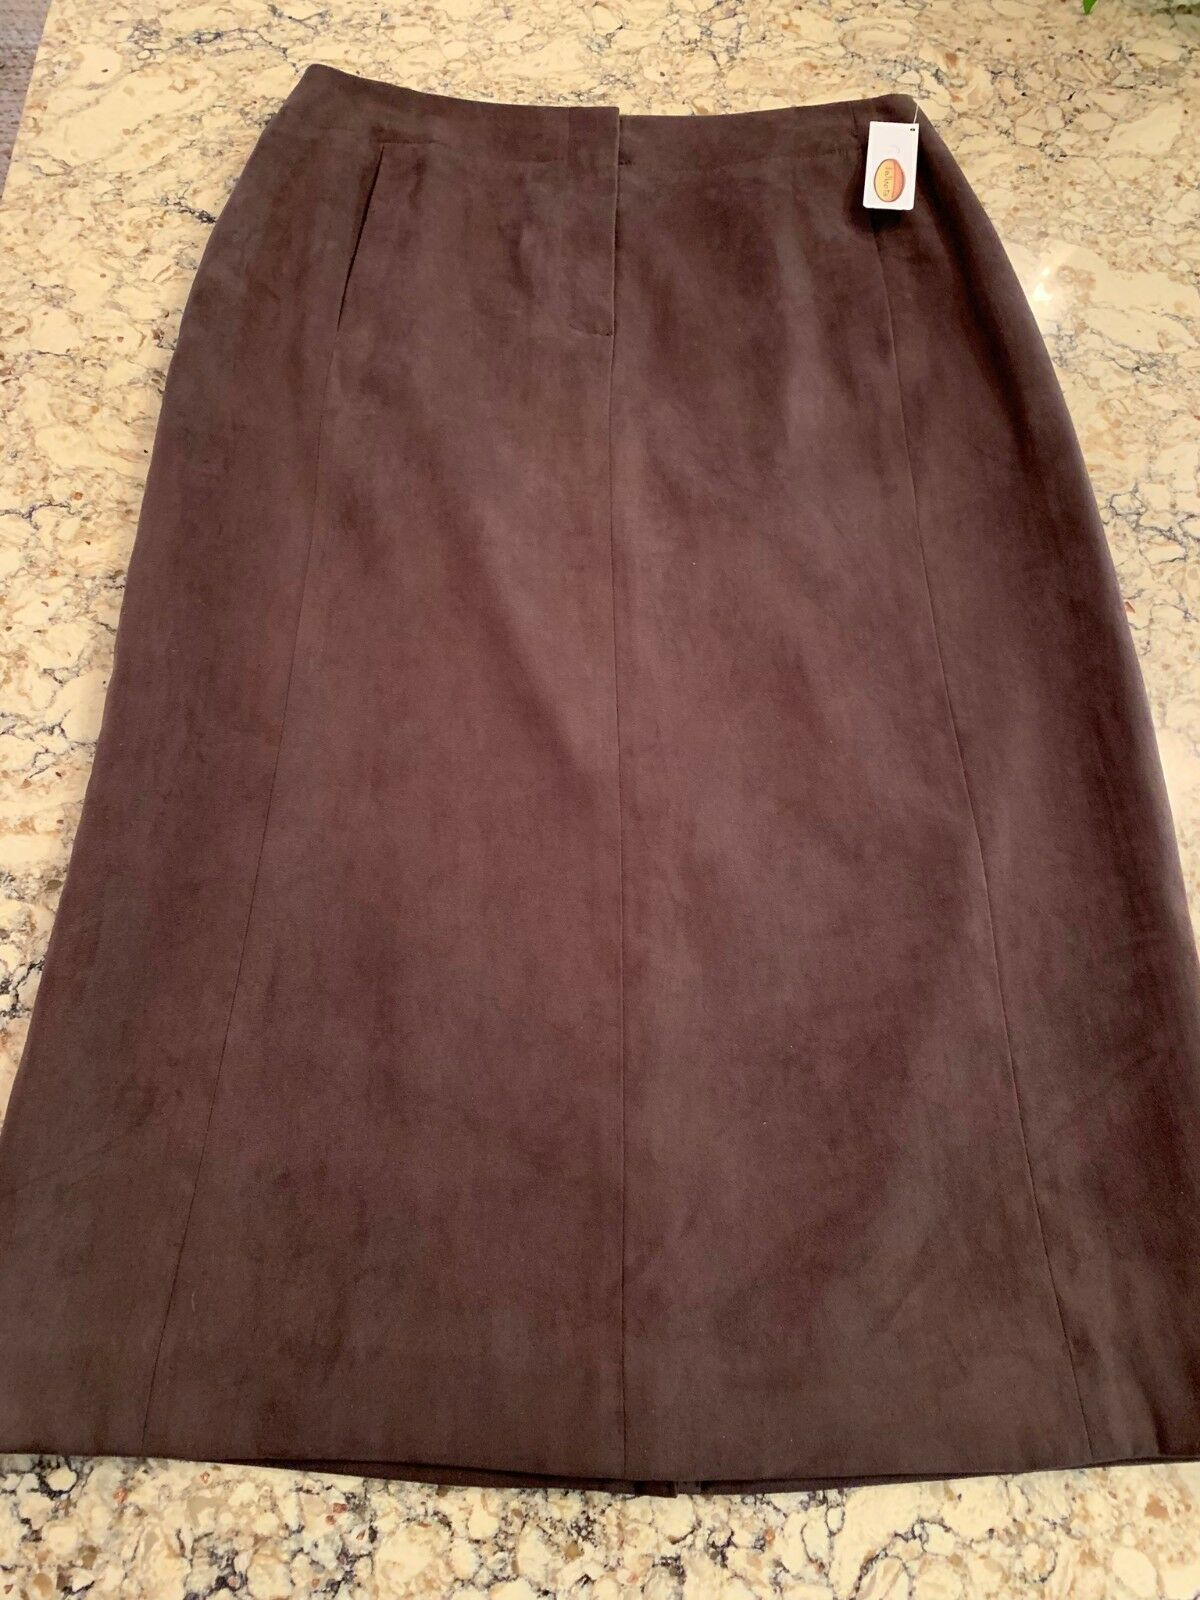 Talbots Women's Skirt, Suede Feel, Chocolate Brown, Size 6, NWT ()